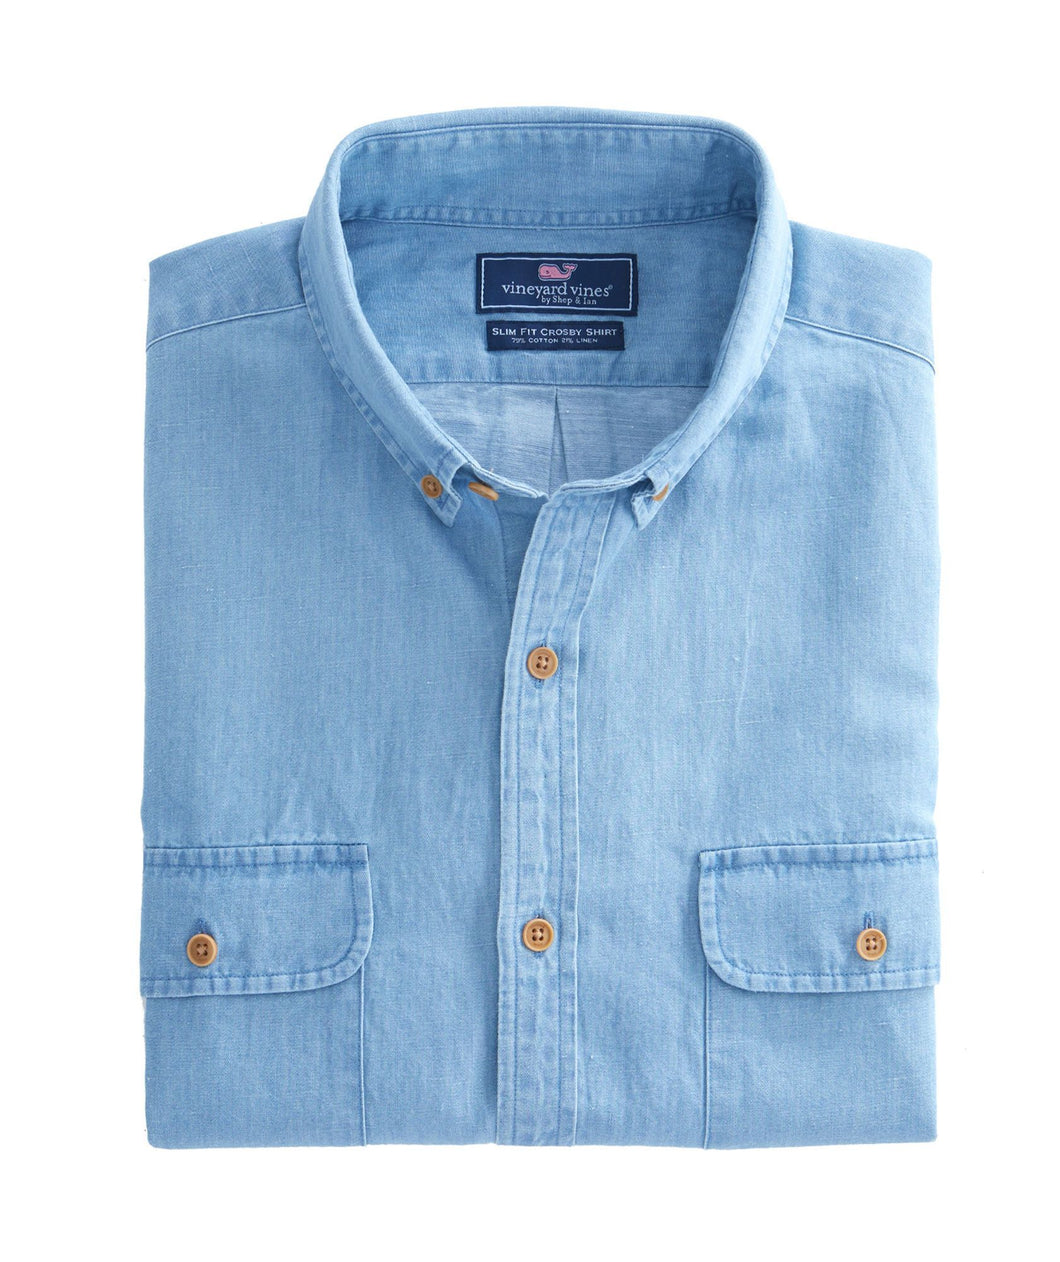 Vineyard Vines MEN - SHIRTS - DRESS SHIRTS Vineyard Vines, Baughers Solid Chambray Two Pocket Slim Crosby Shirt, Cloud